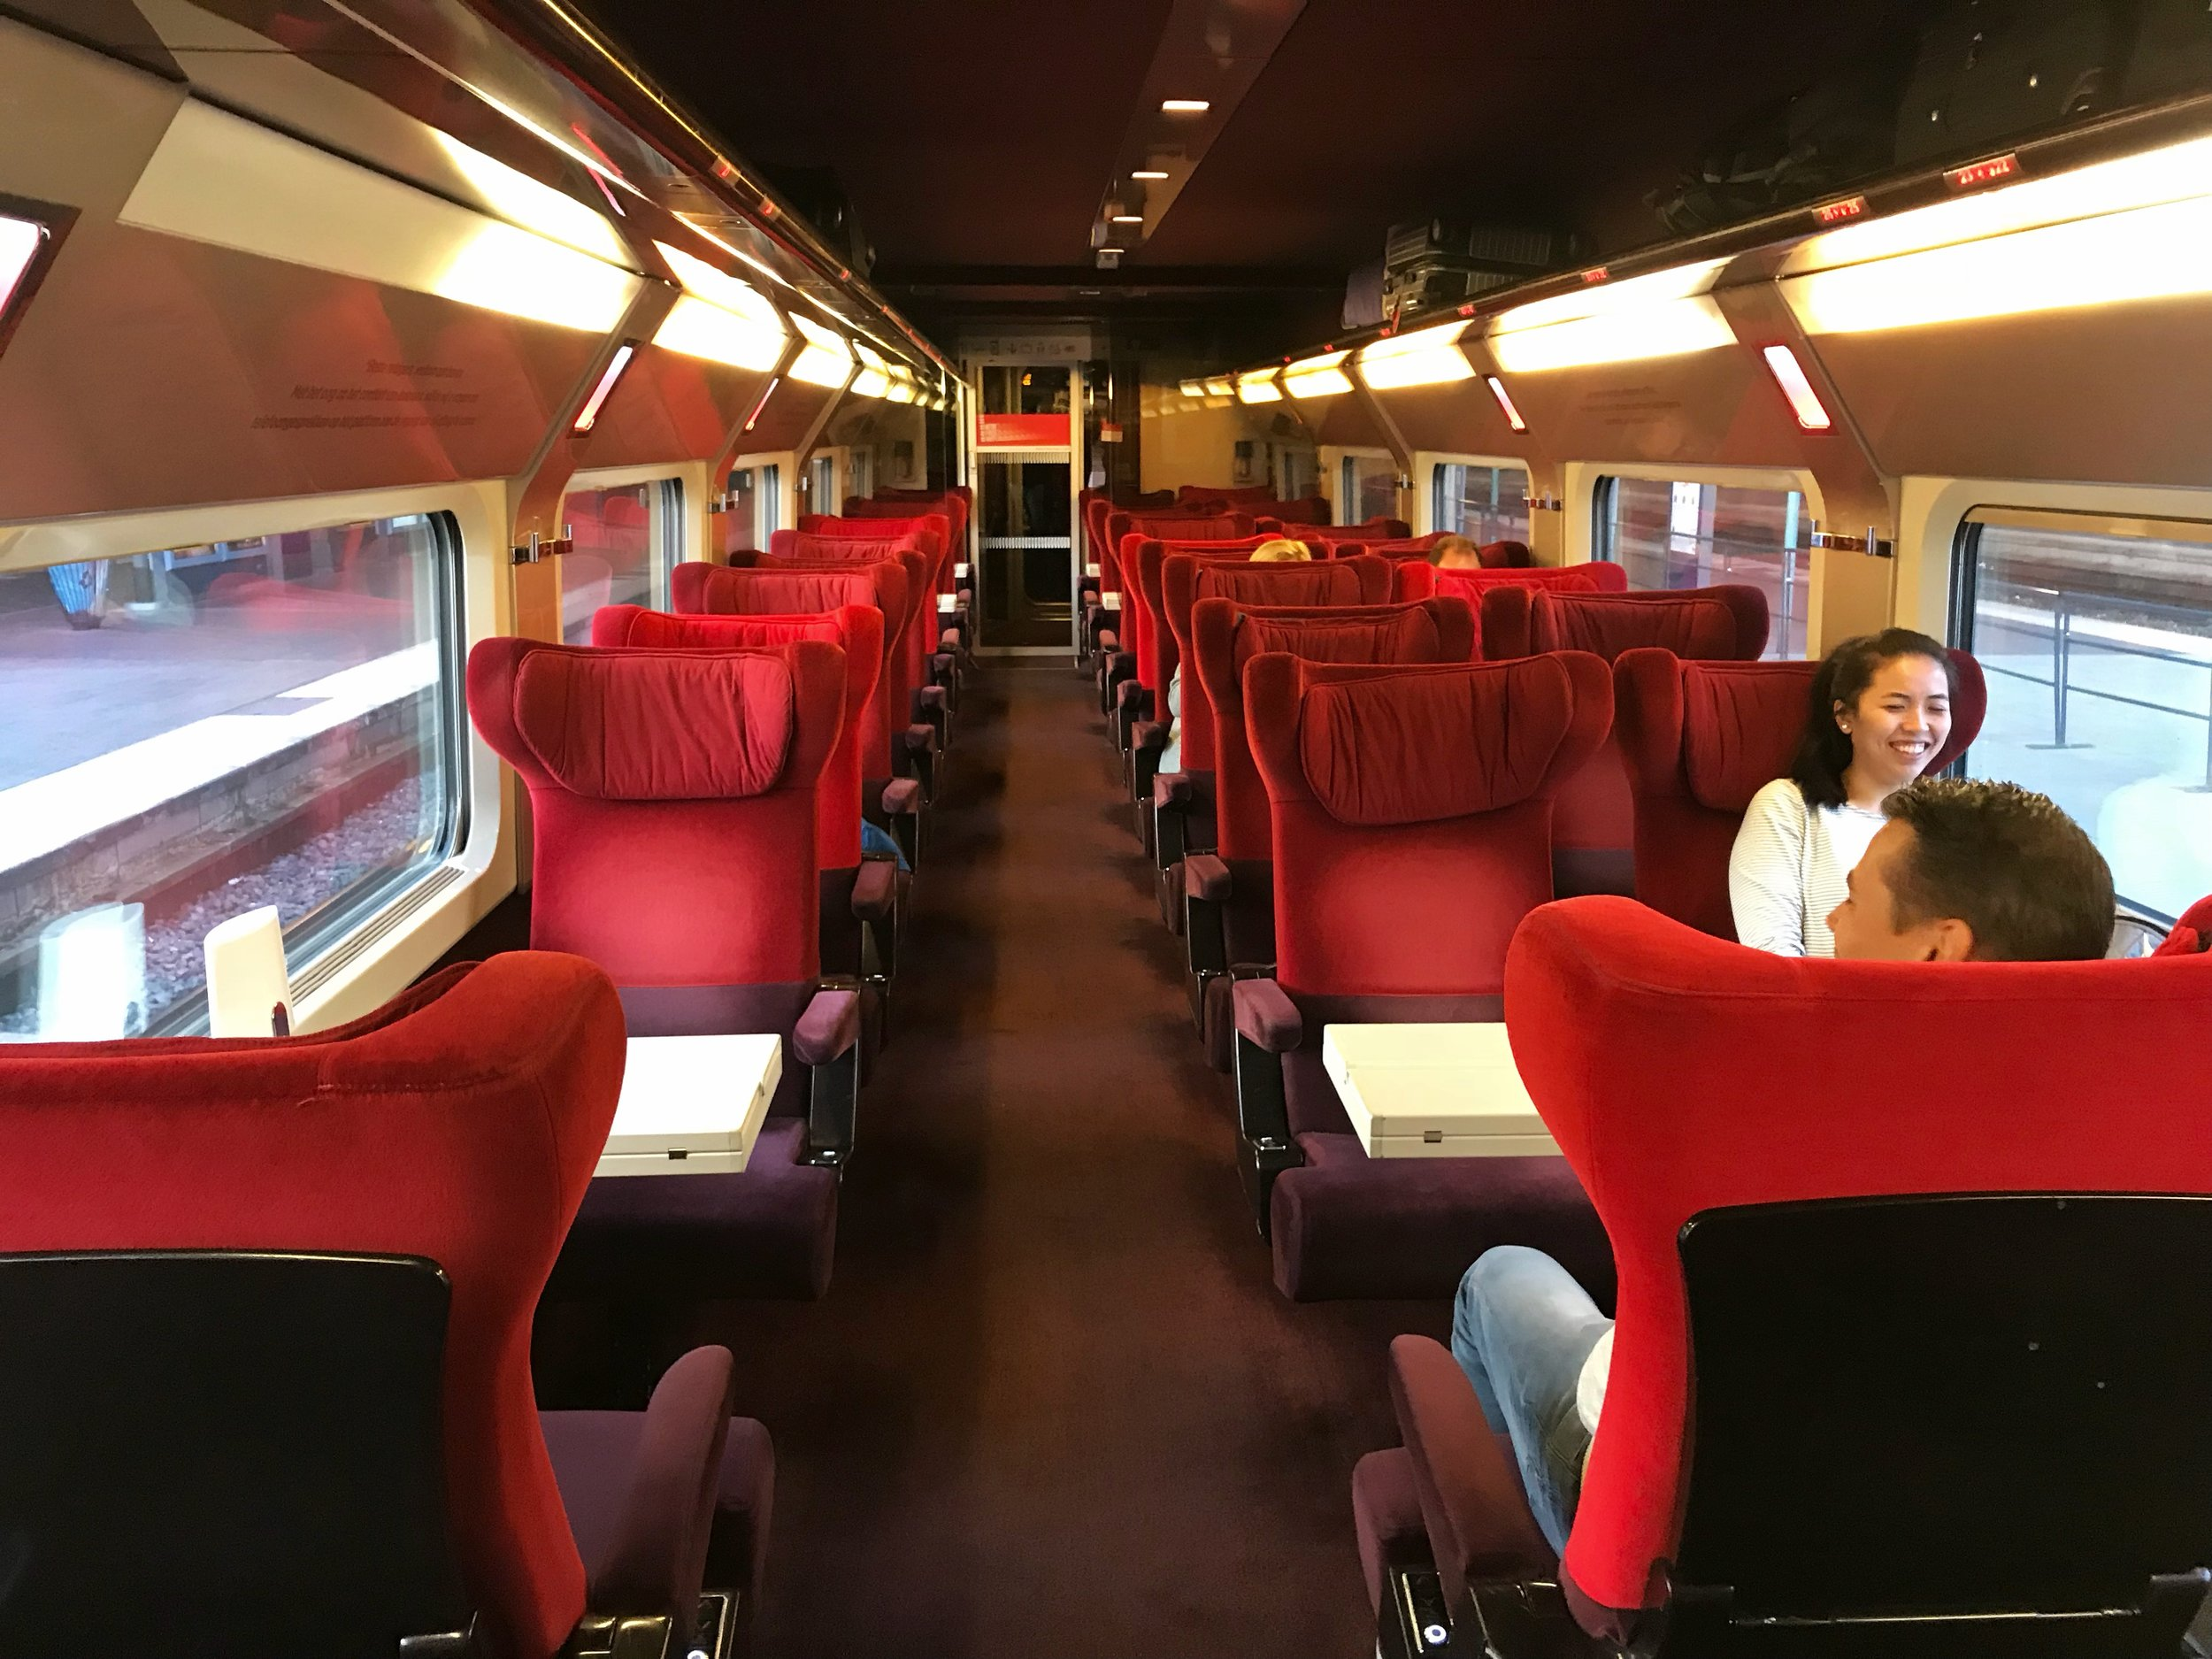 First Class cabin on Thalys train. Includes meals, wifi, power outlets as well.